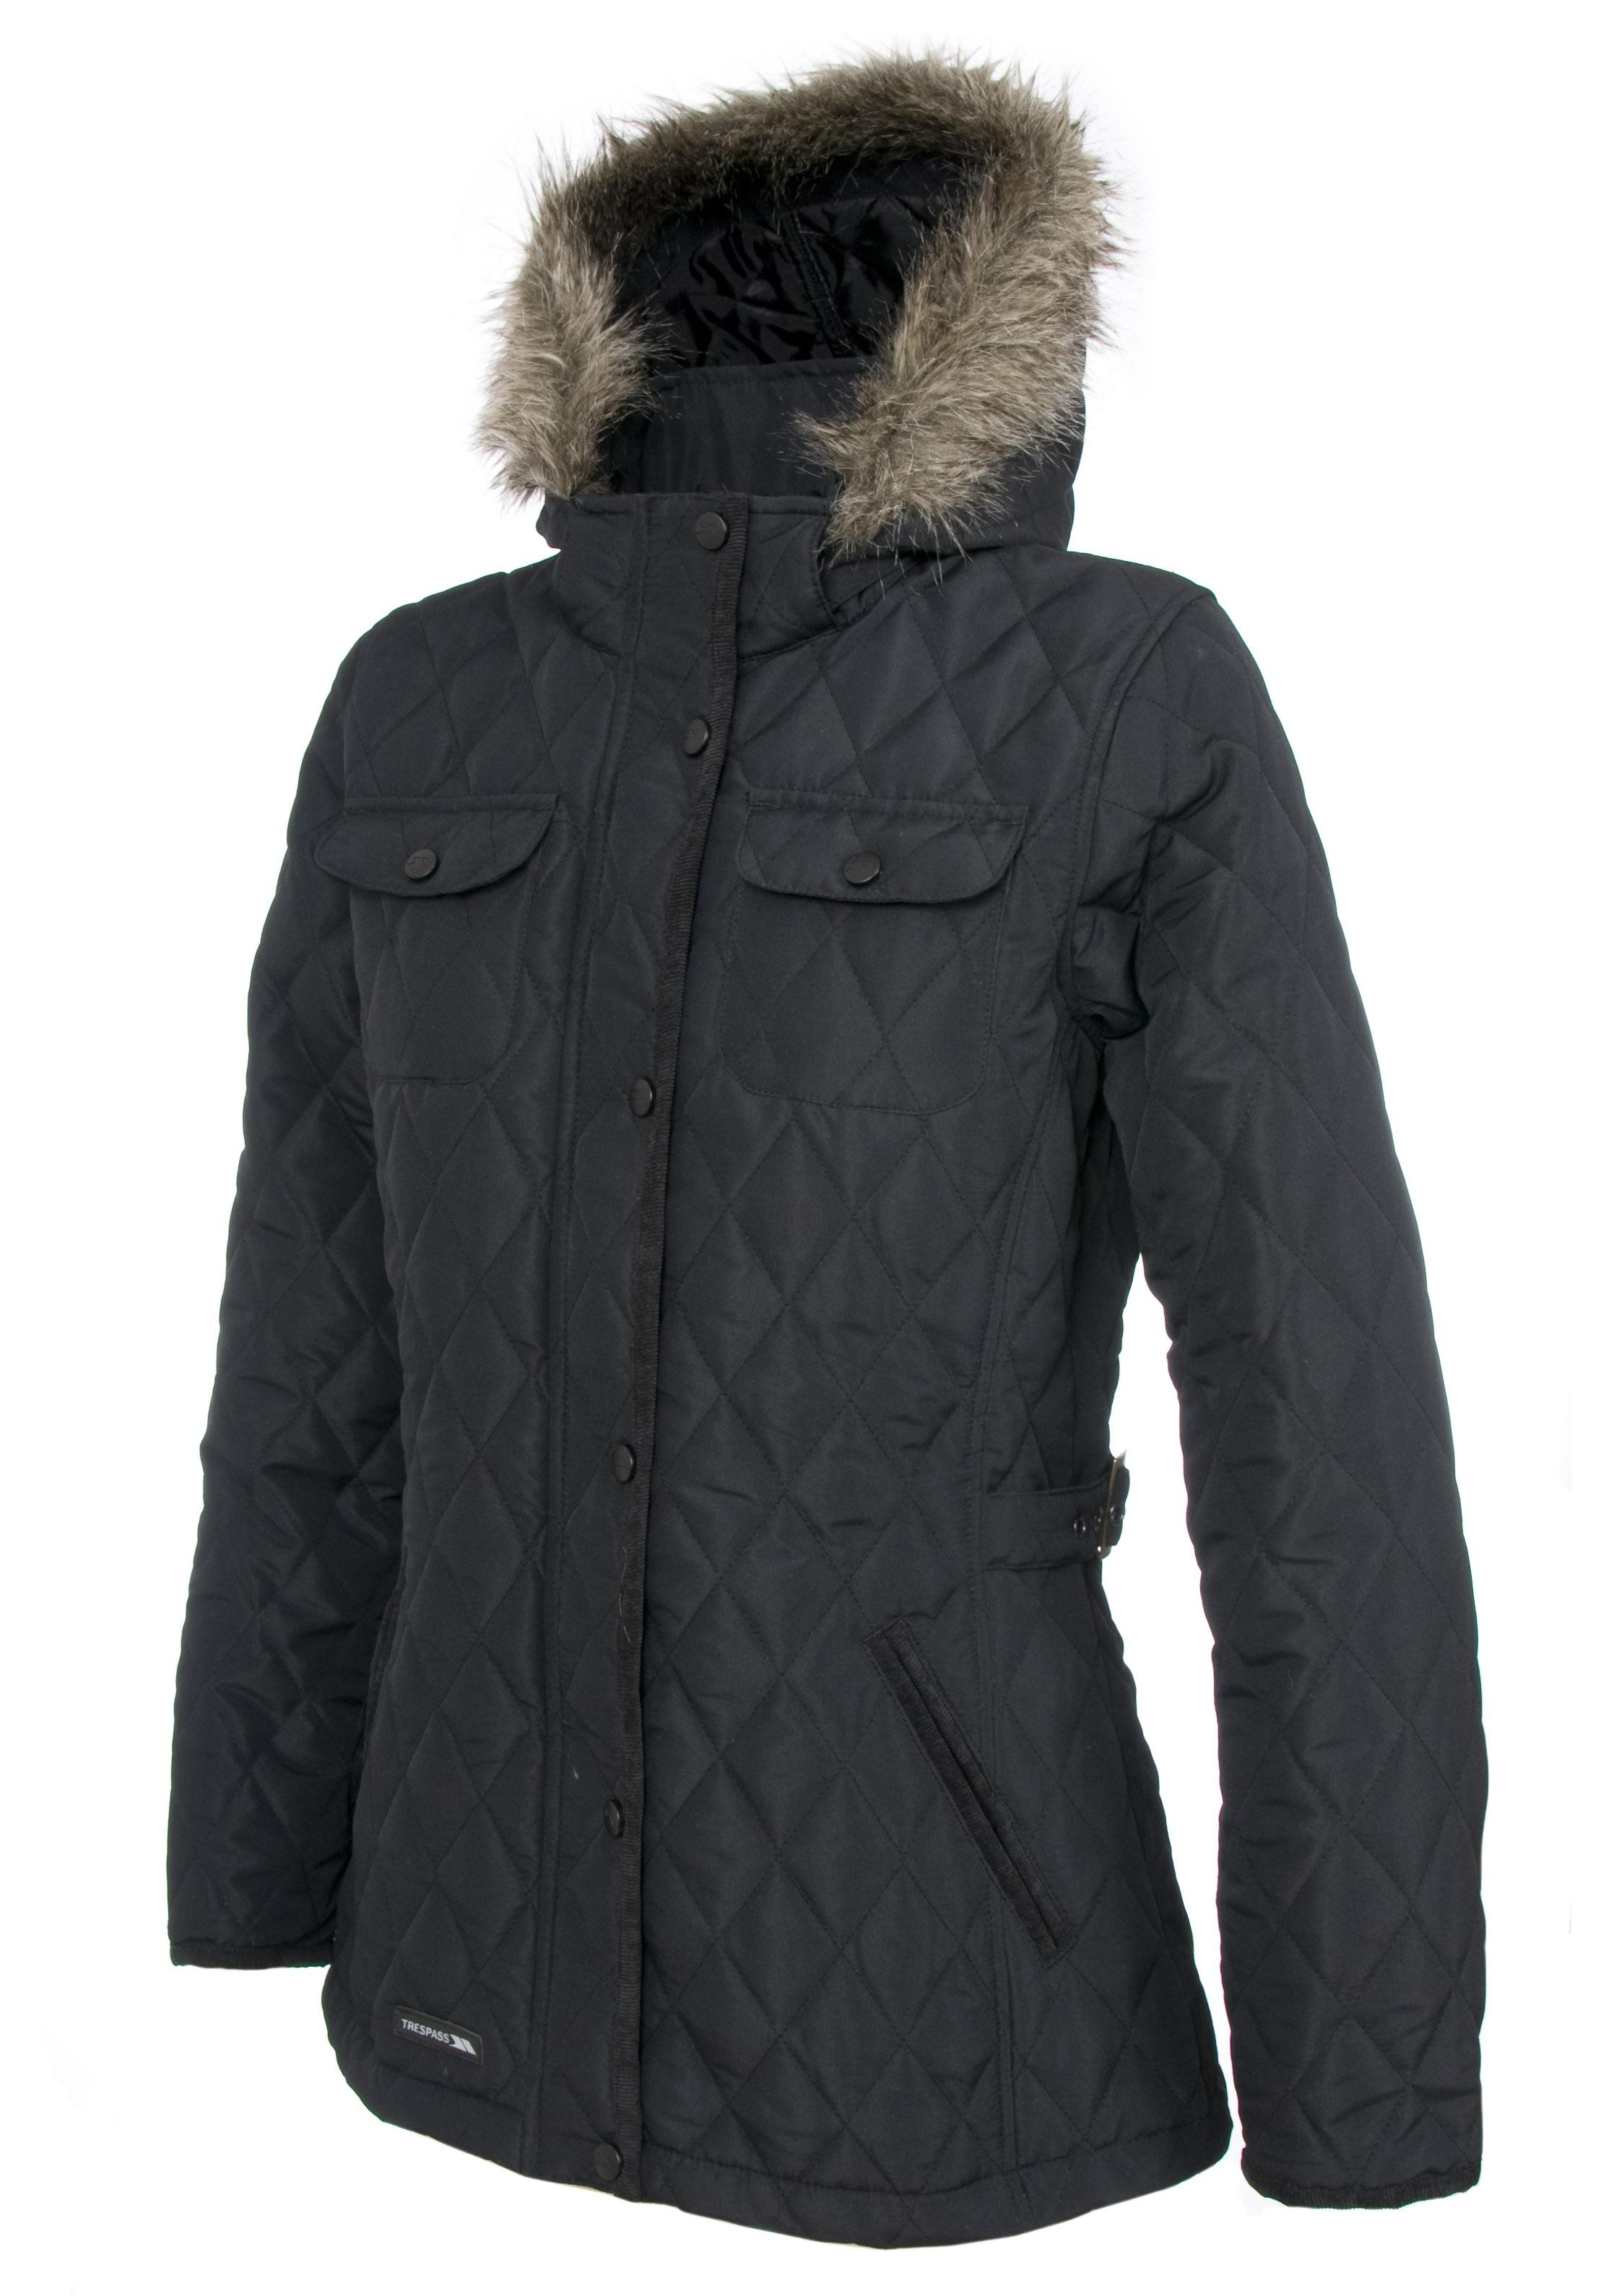 Trespass Purdey Women S Quilted Jacket Black By Trespass